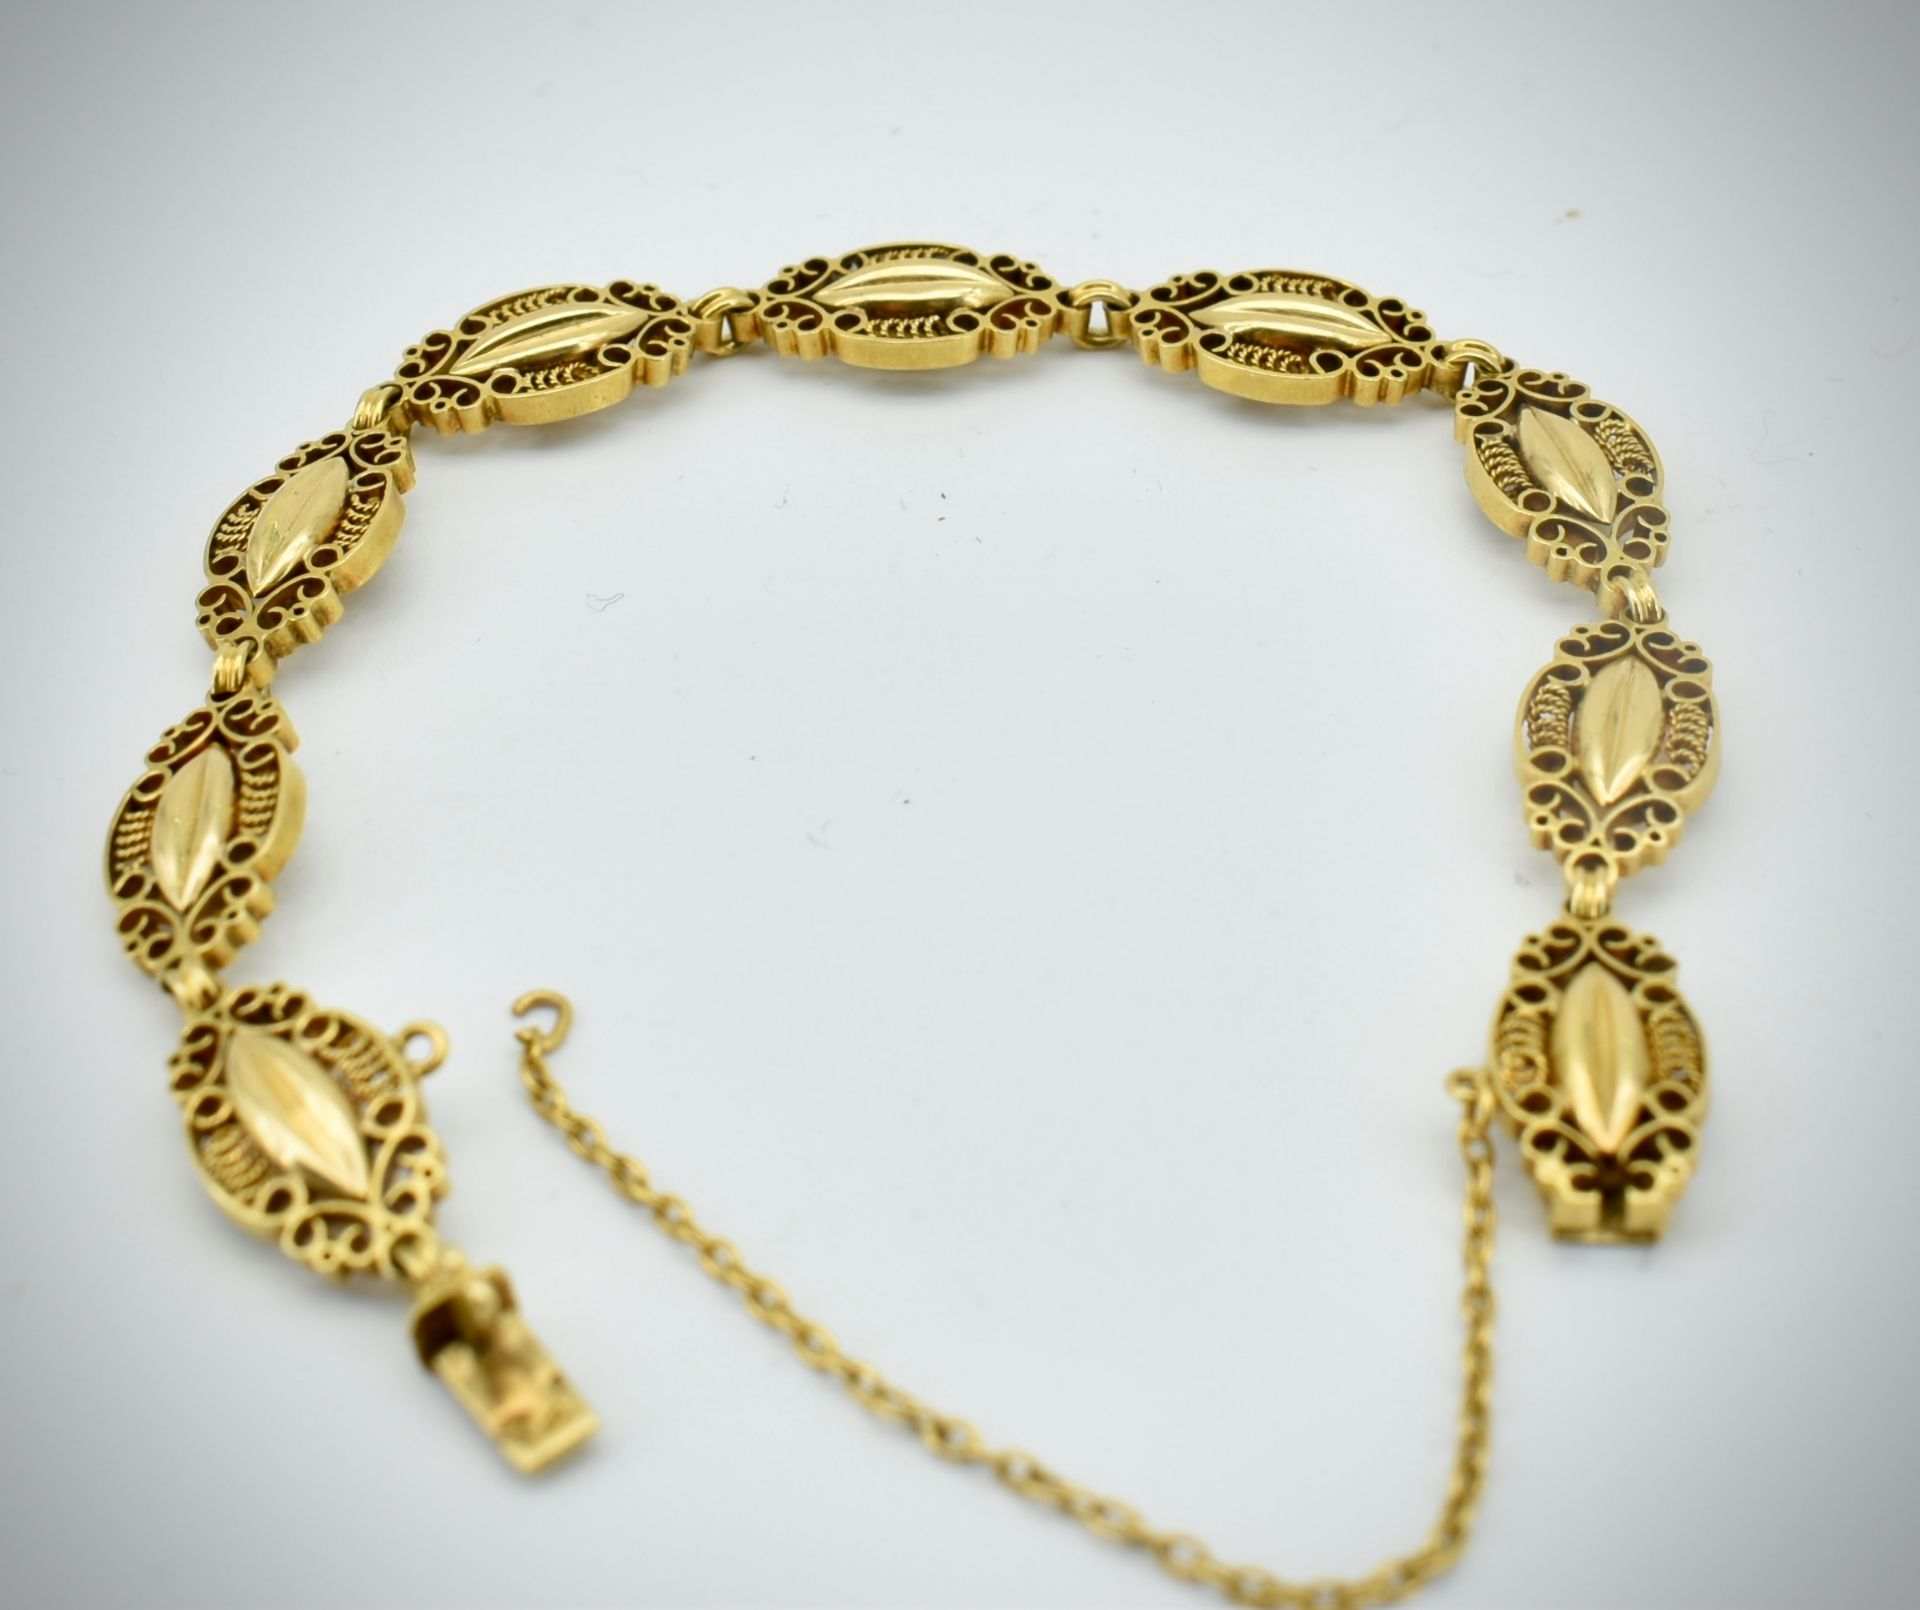 French 18ct Gold Art Nouveau Bracelet. - Image 3 of 6